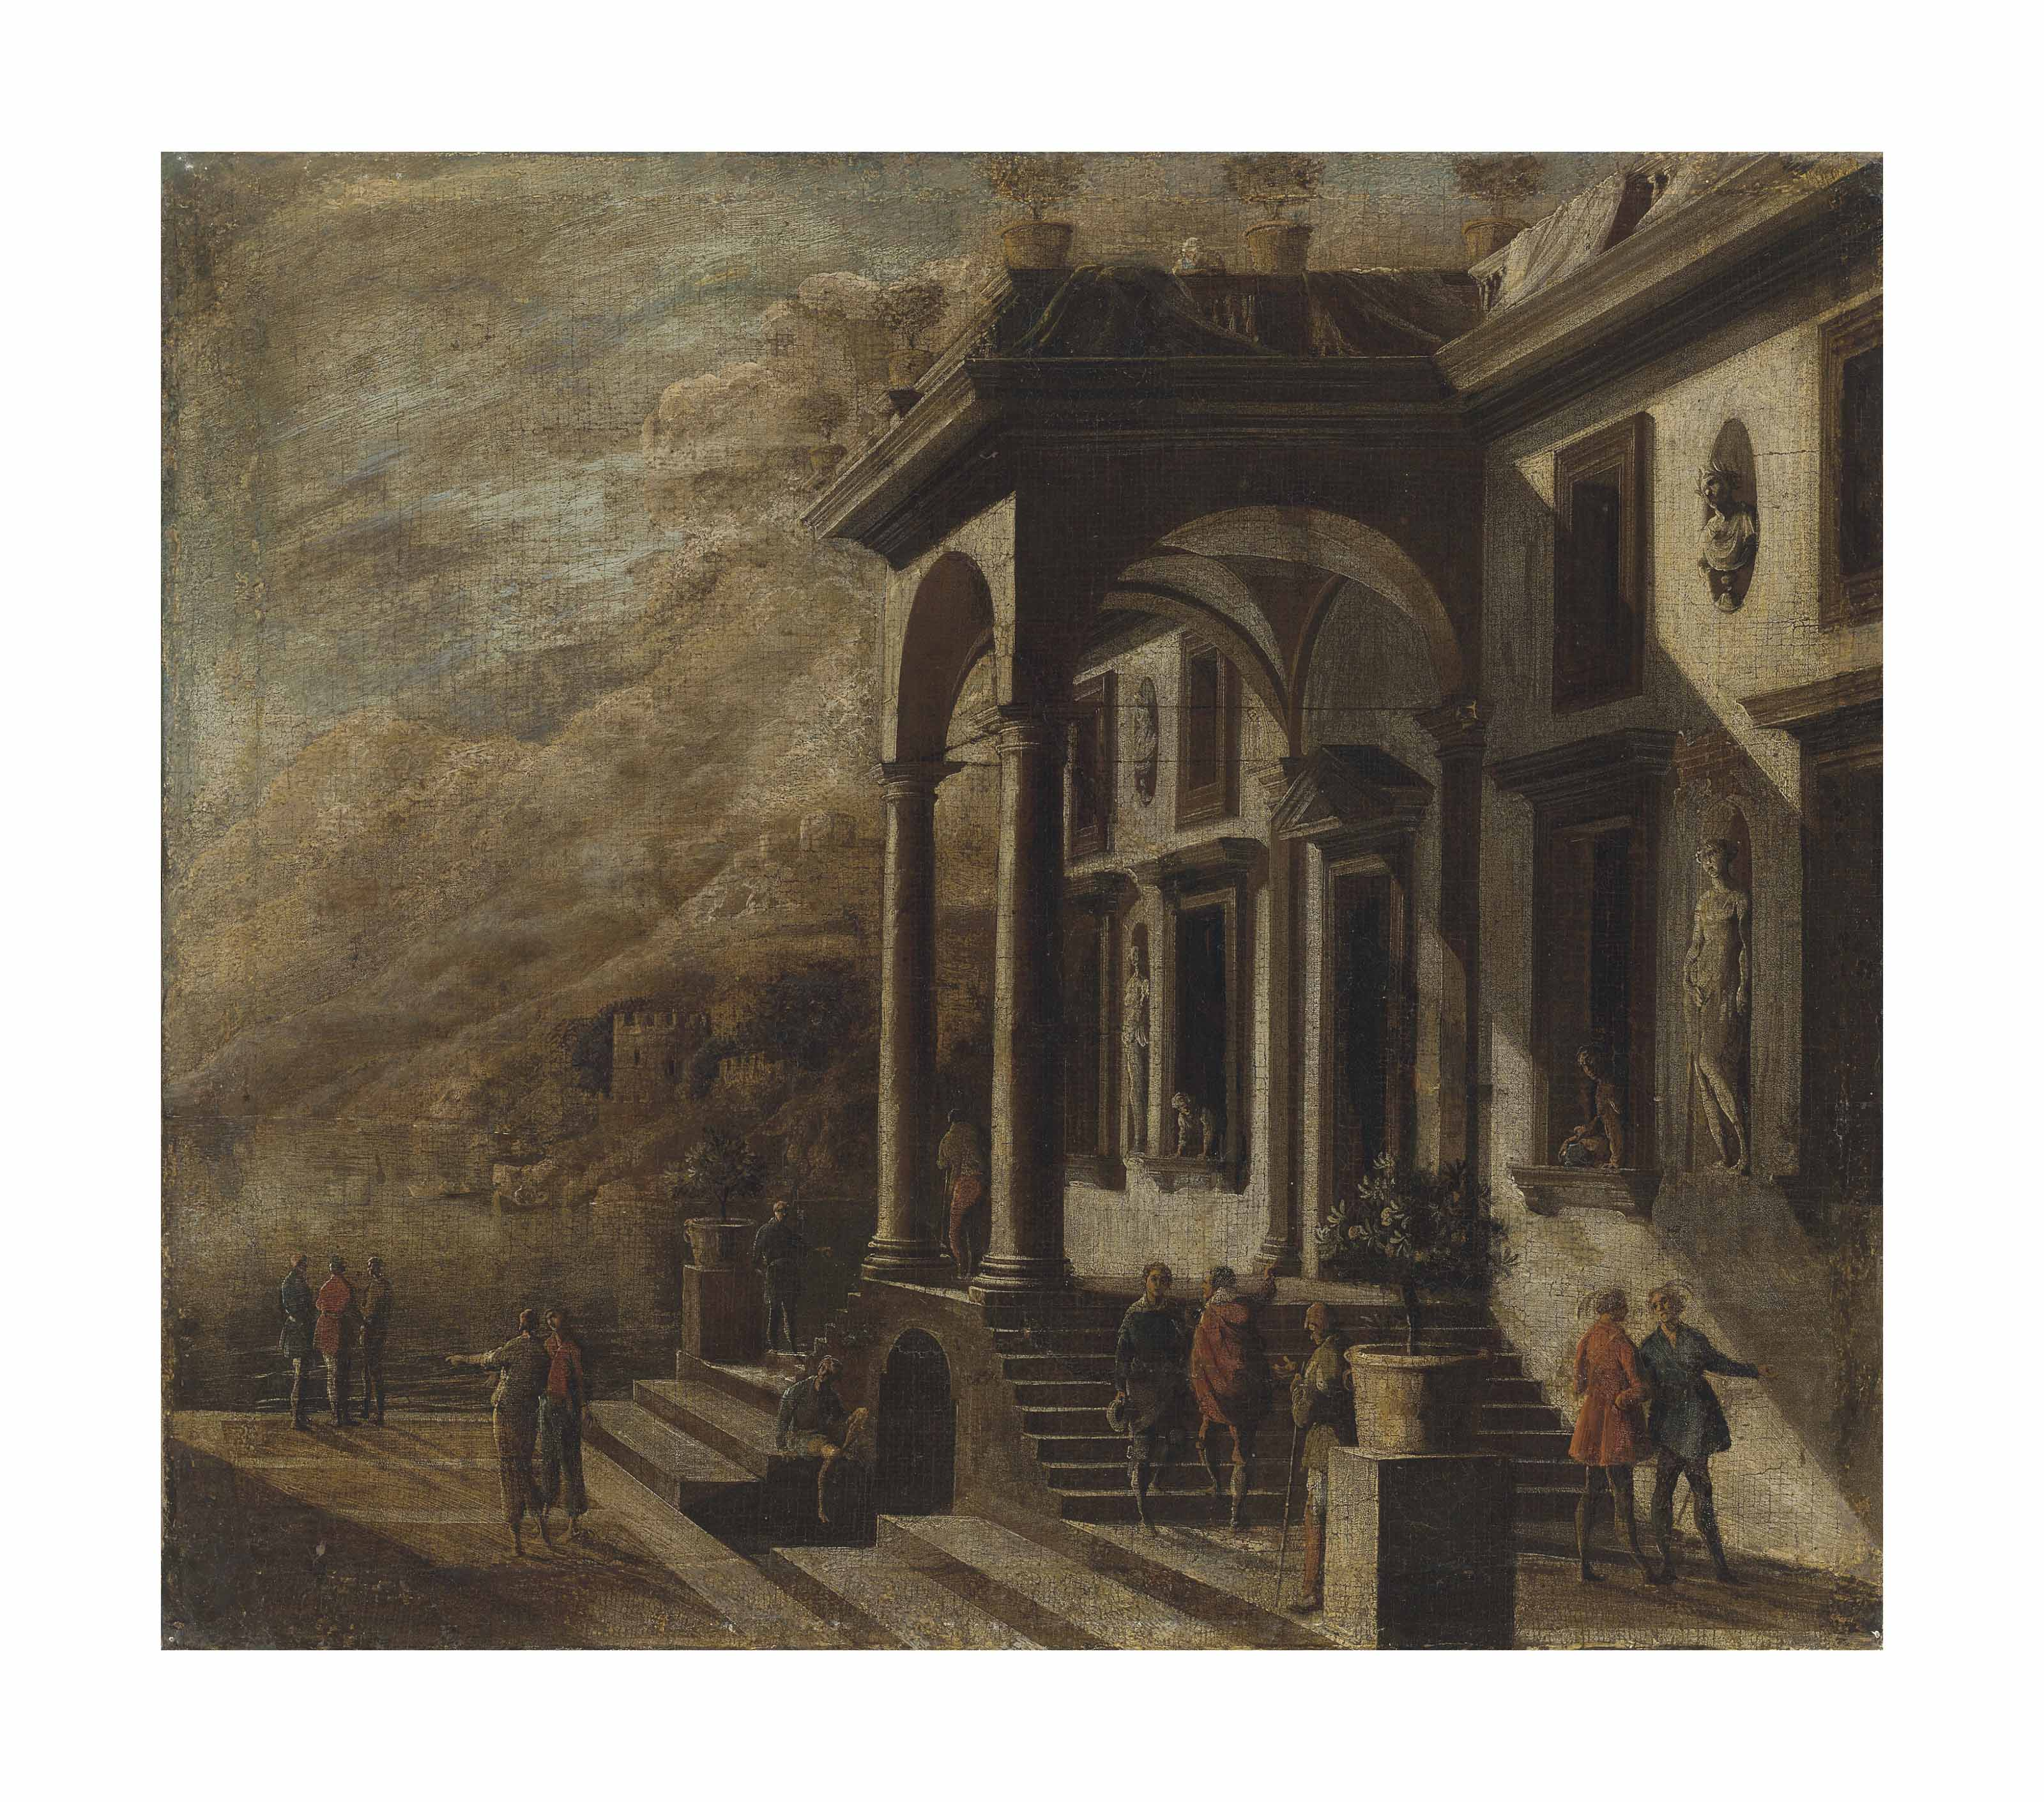 An architectural capriccio with figures